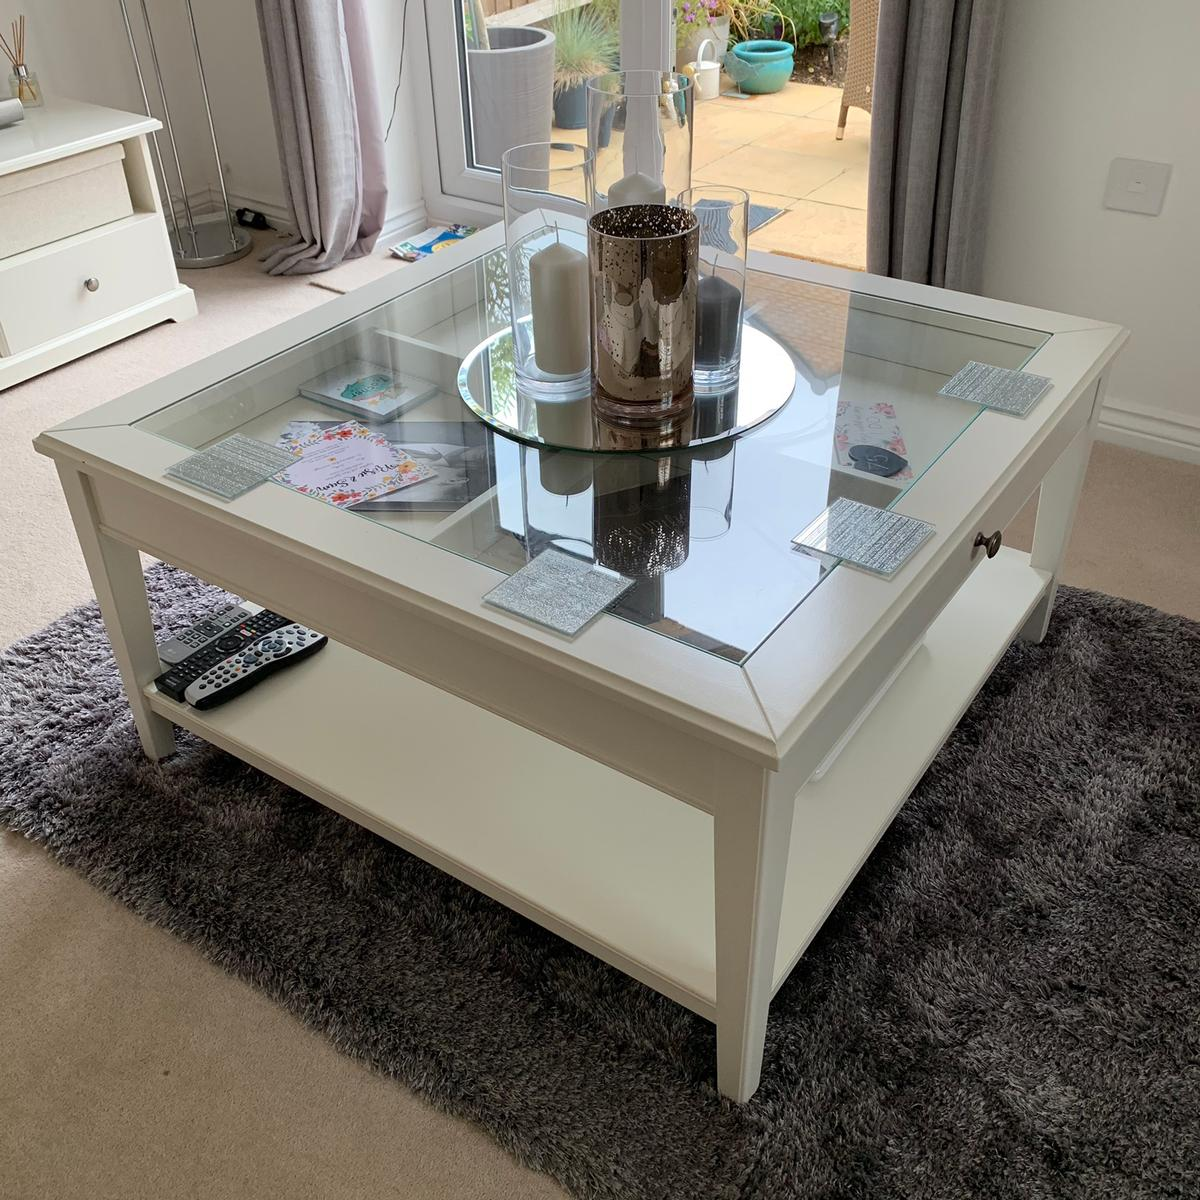 Liatorp Side Table.Ikea Liatorp Coffee Table White Glass